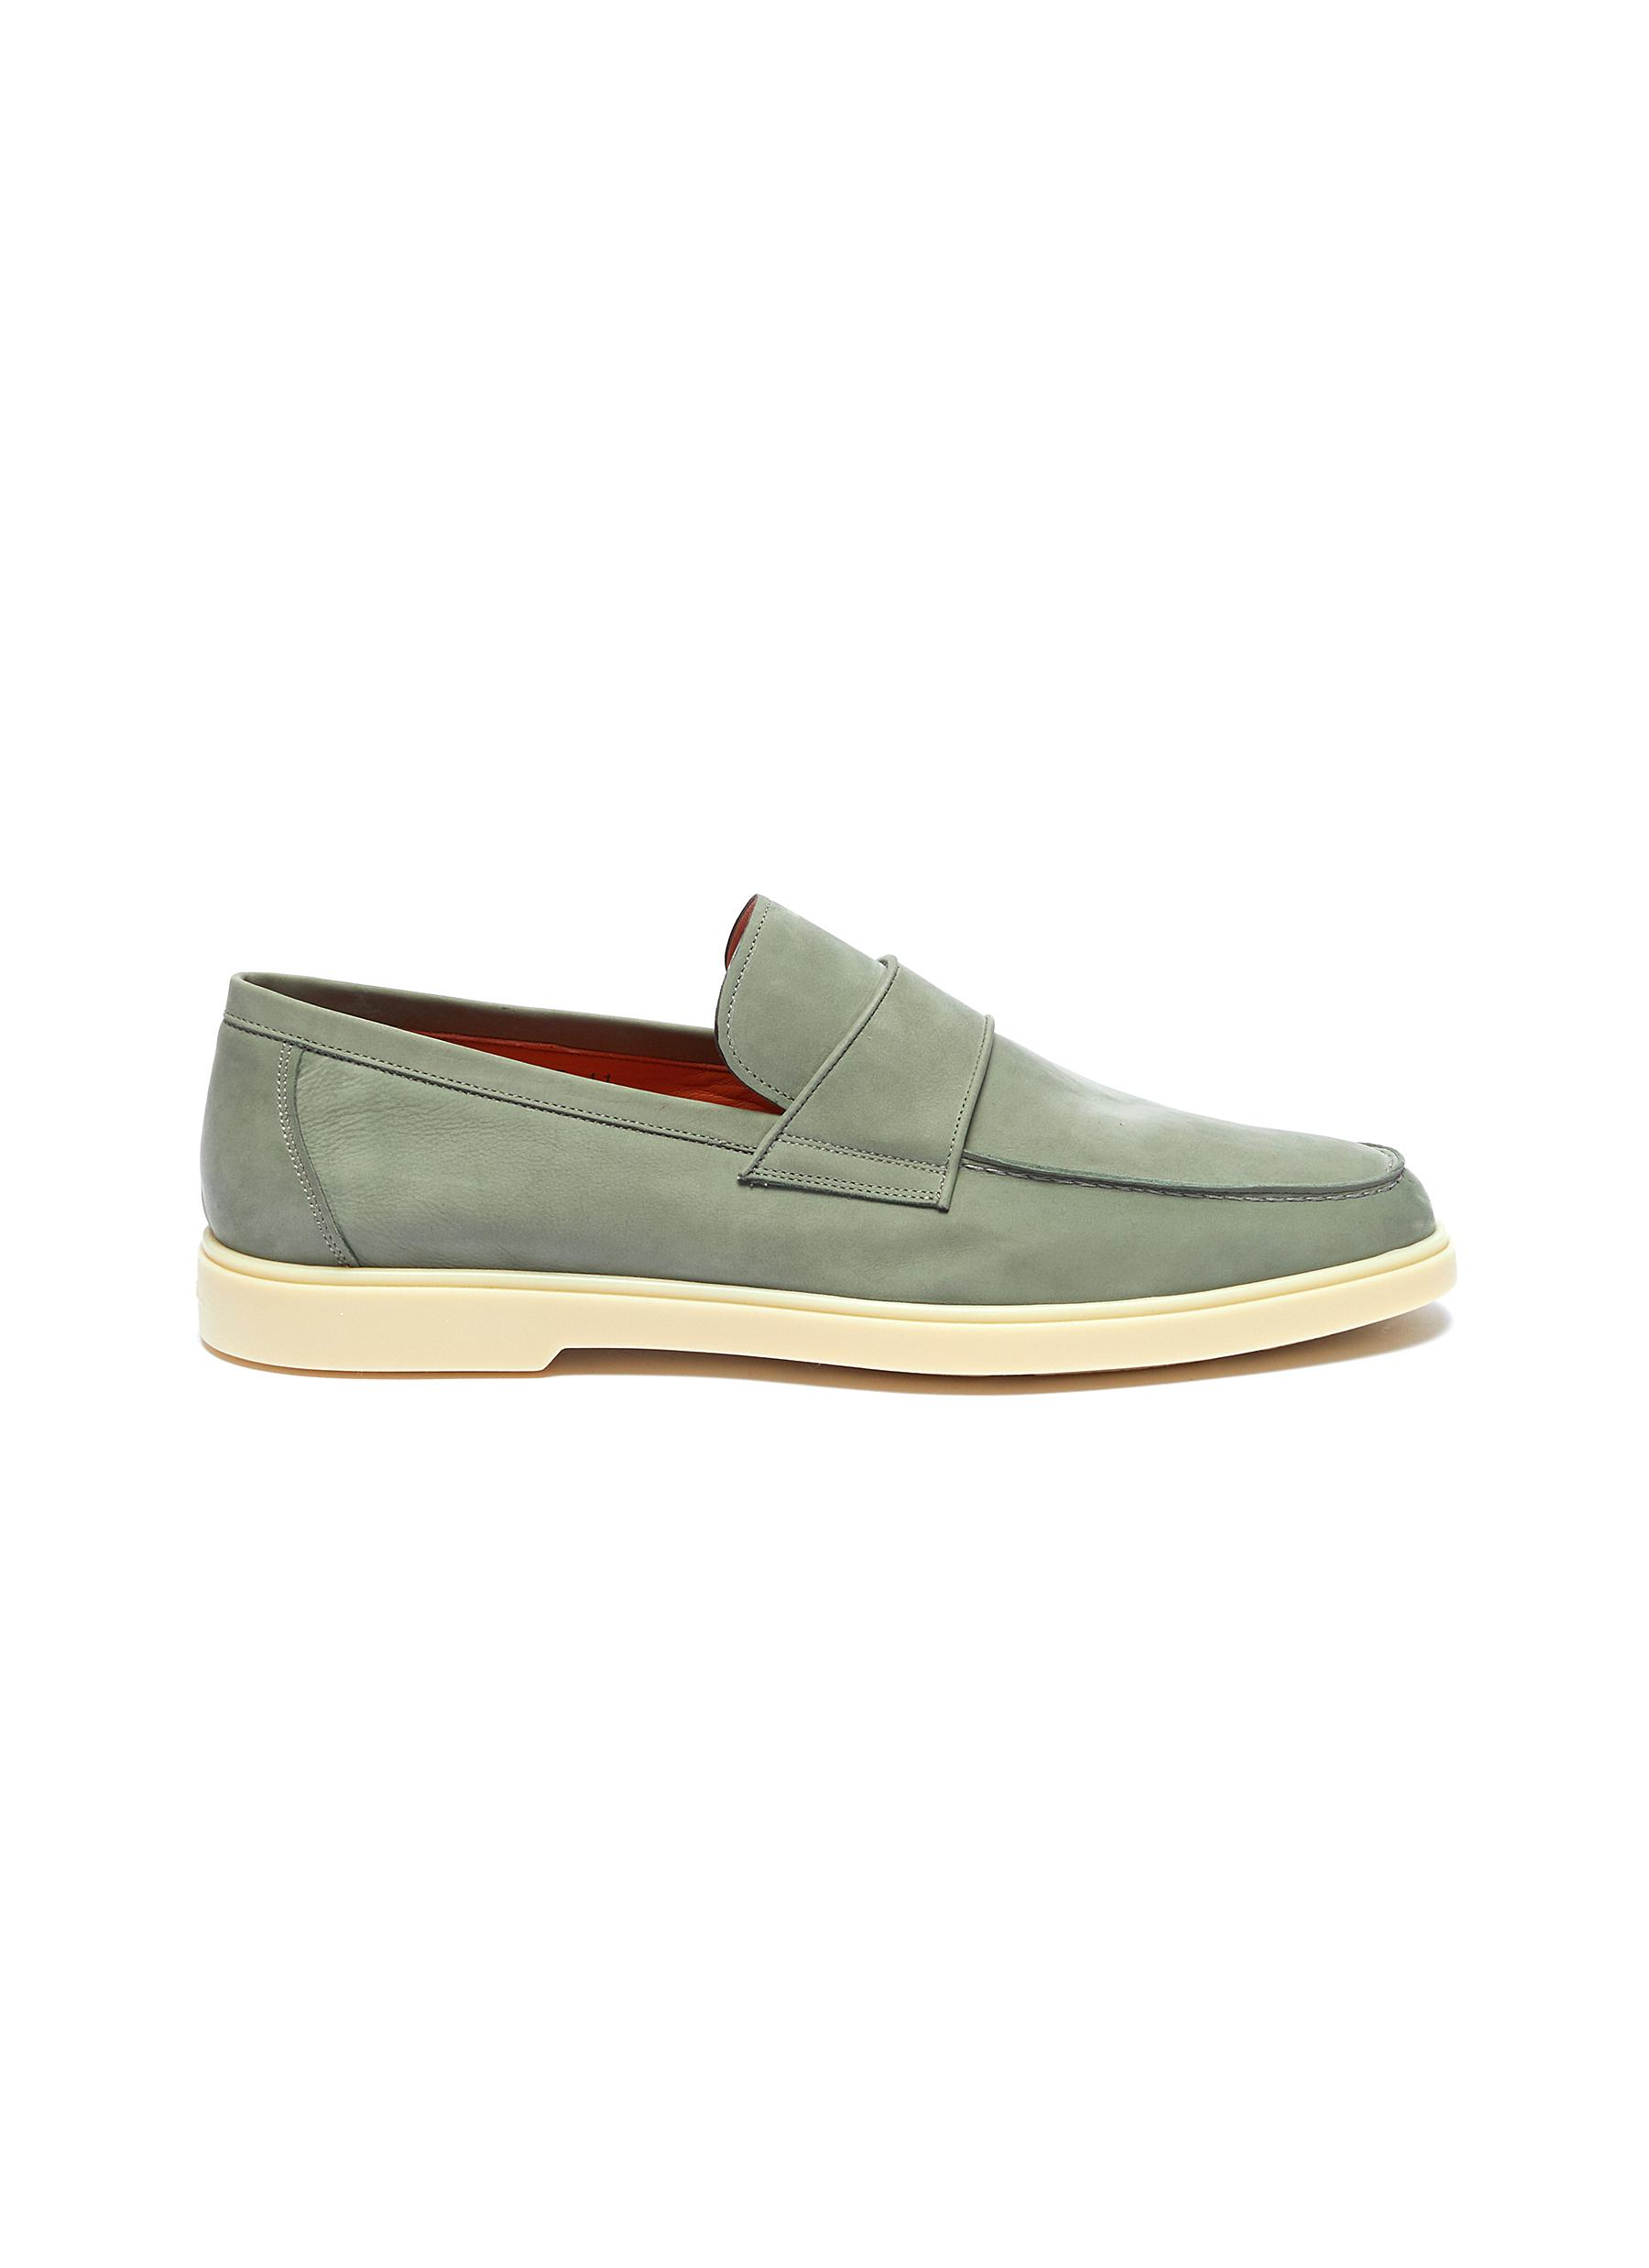 5ab5acb098e Main View - Click To Enlarge - Santoni - Nubuck leather penny loafers